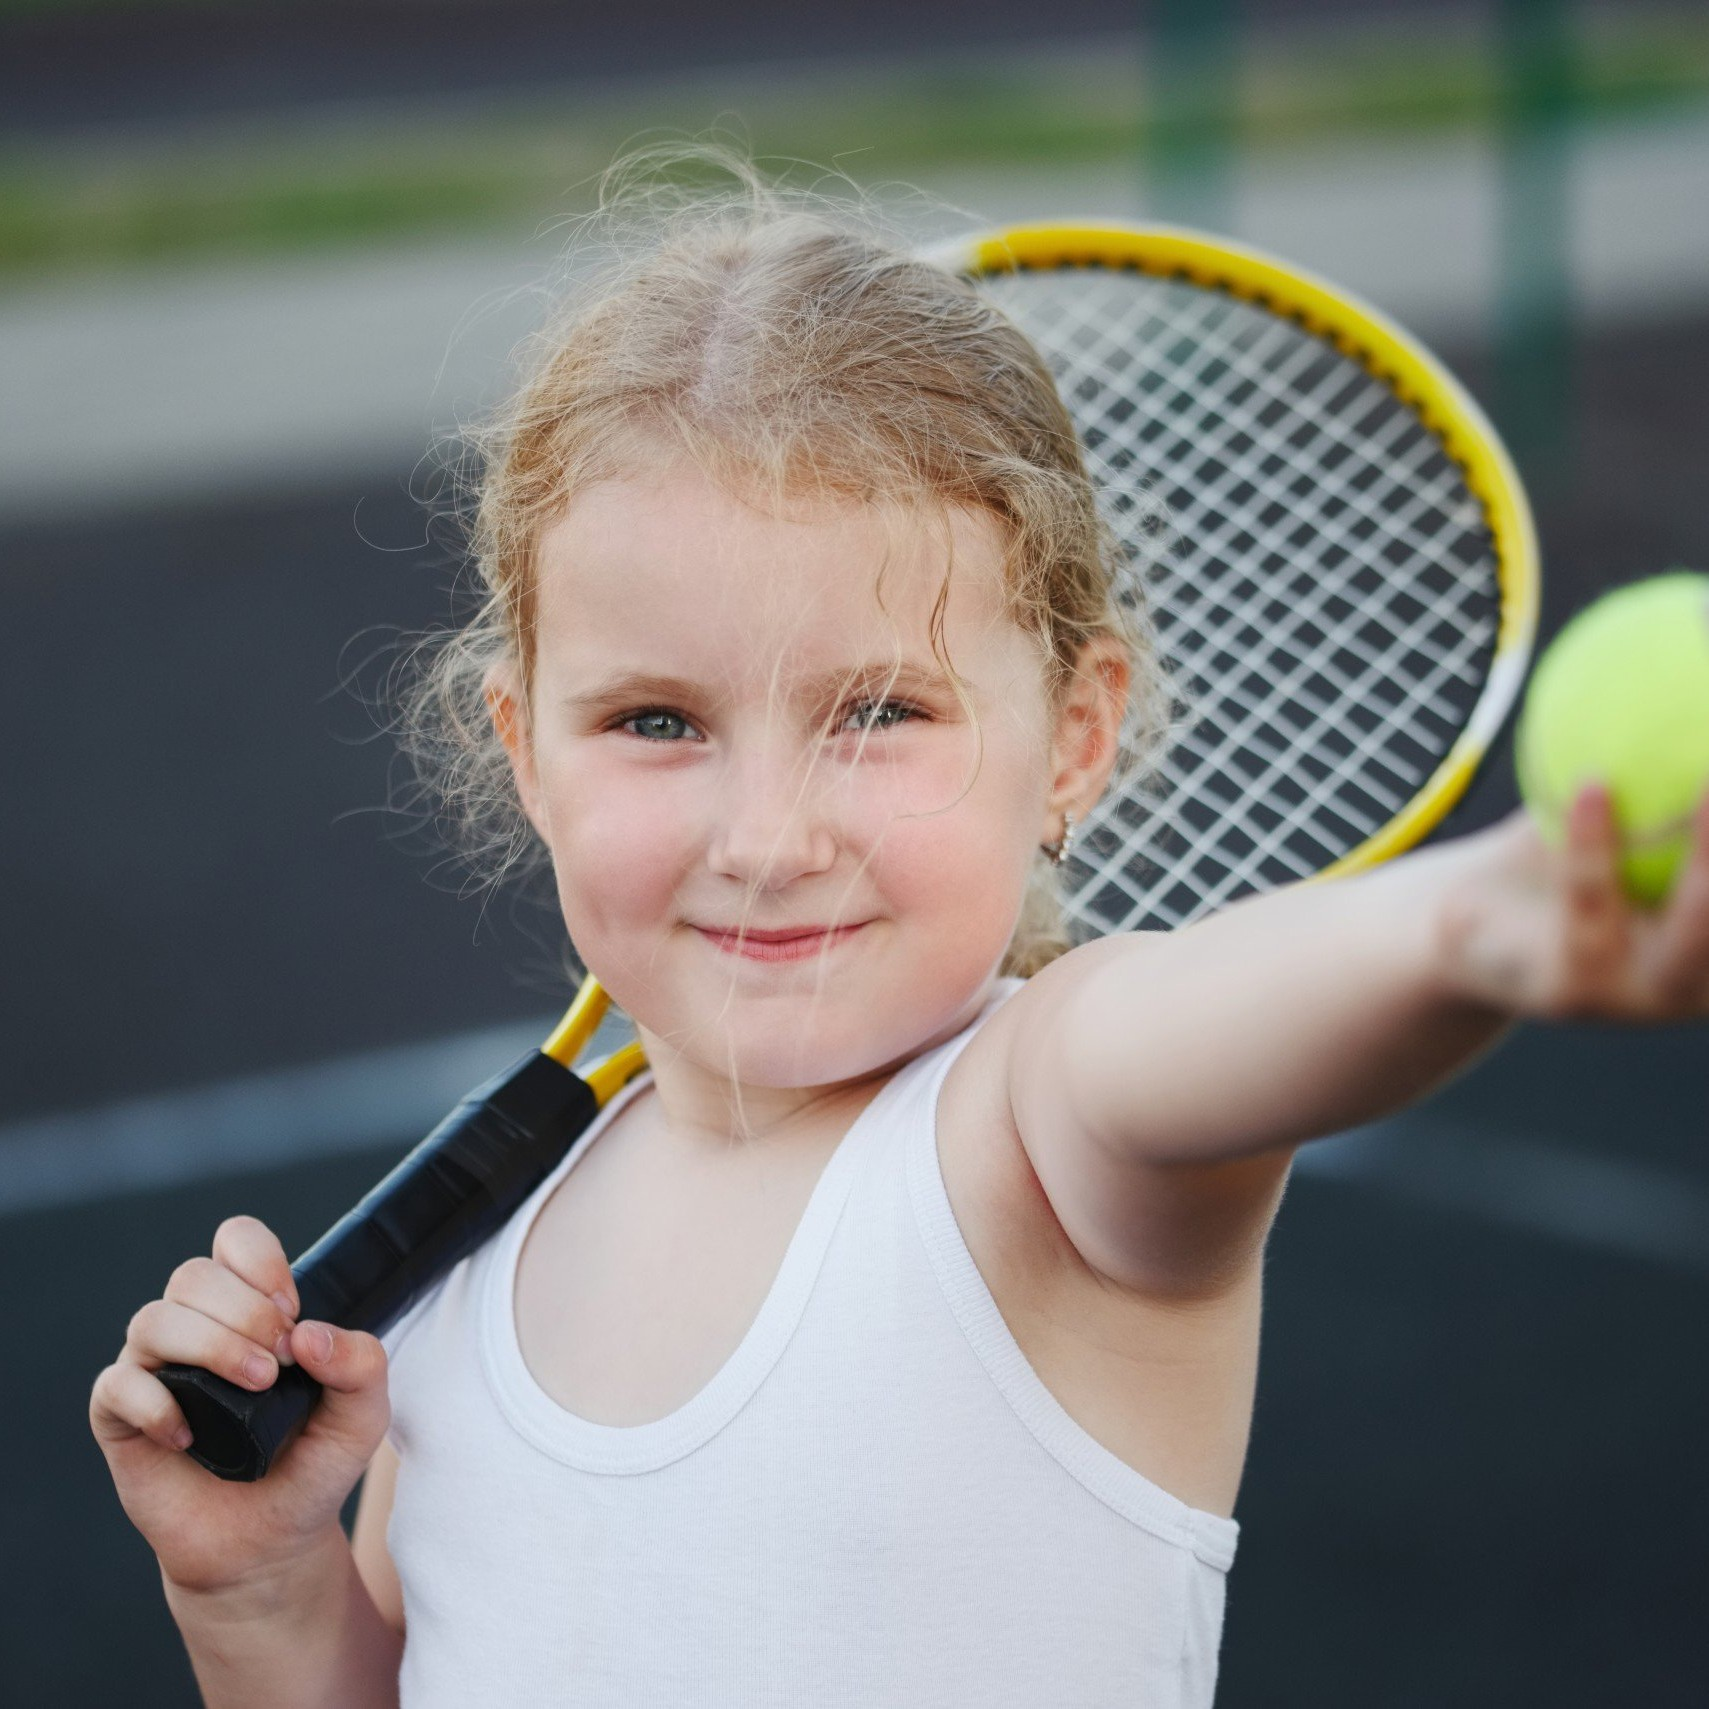 little girl plays tennis on court outdoors